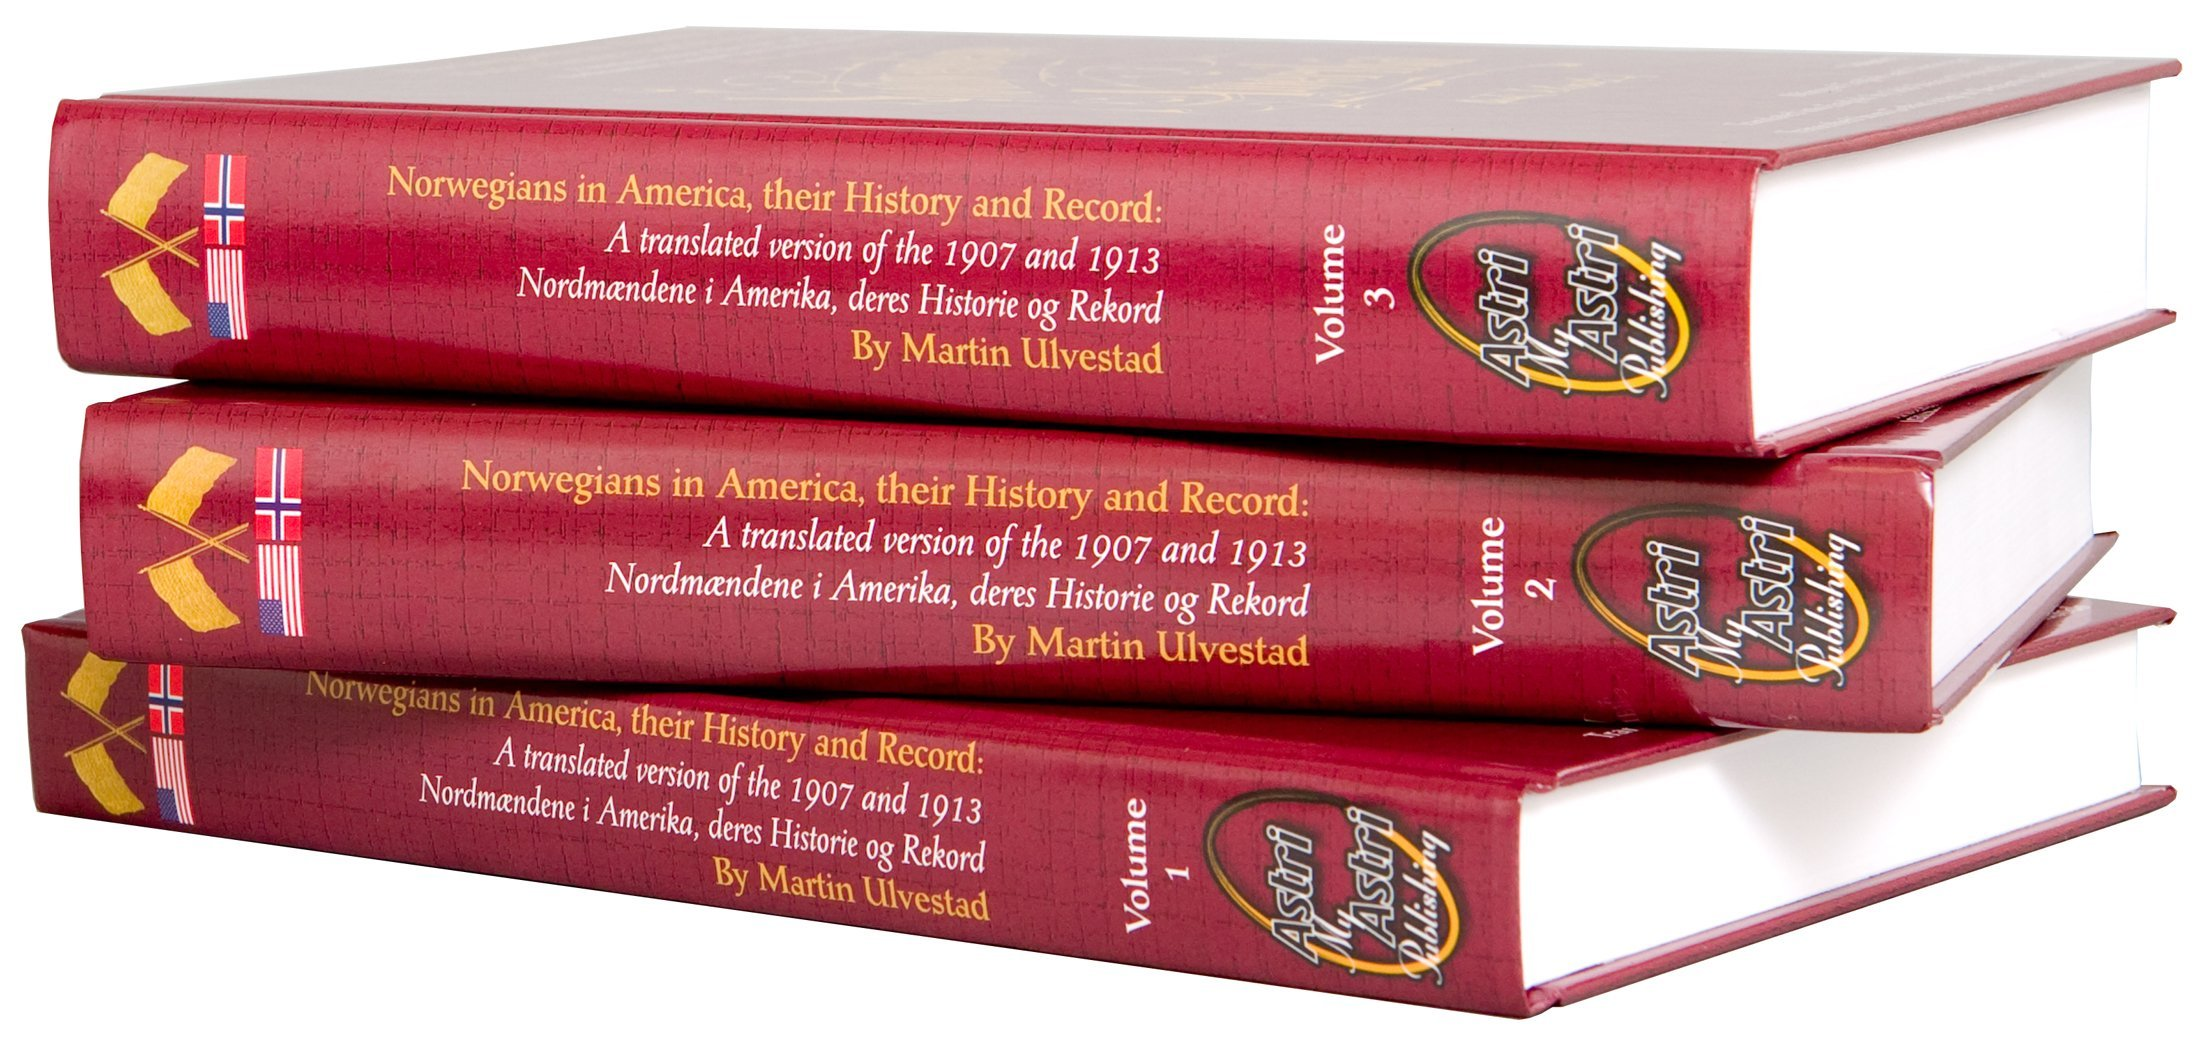 Download Norwegians in America, their History and Record, 3 Volume Set, by Martin Ulvestad (A translated version of the 1907 and 1913 Nordmændene i Amerika, bilingual English Norwegian, deres Historie og Rekord, bilingual English Norwegian, Volumes 1,2,3) ebook